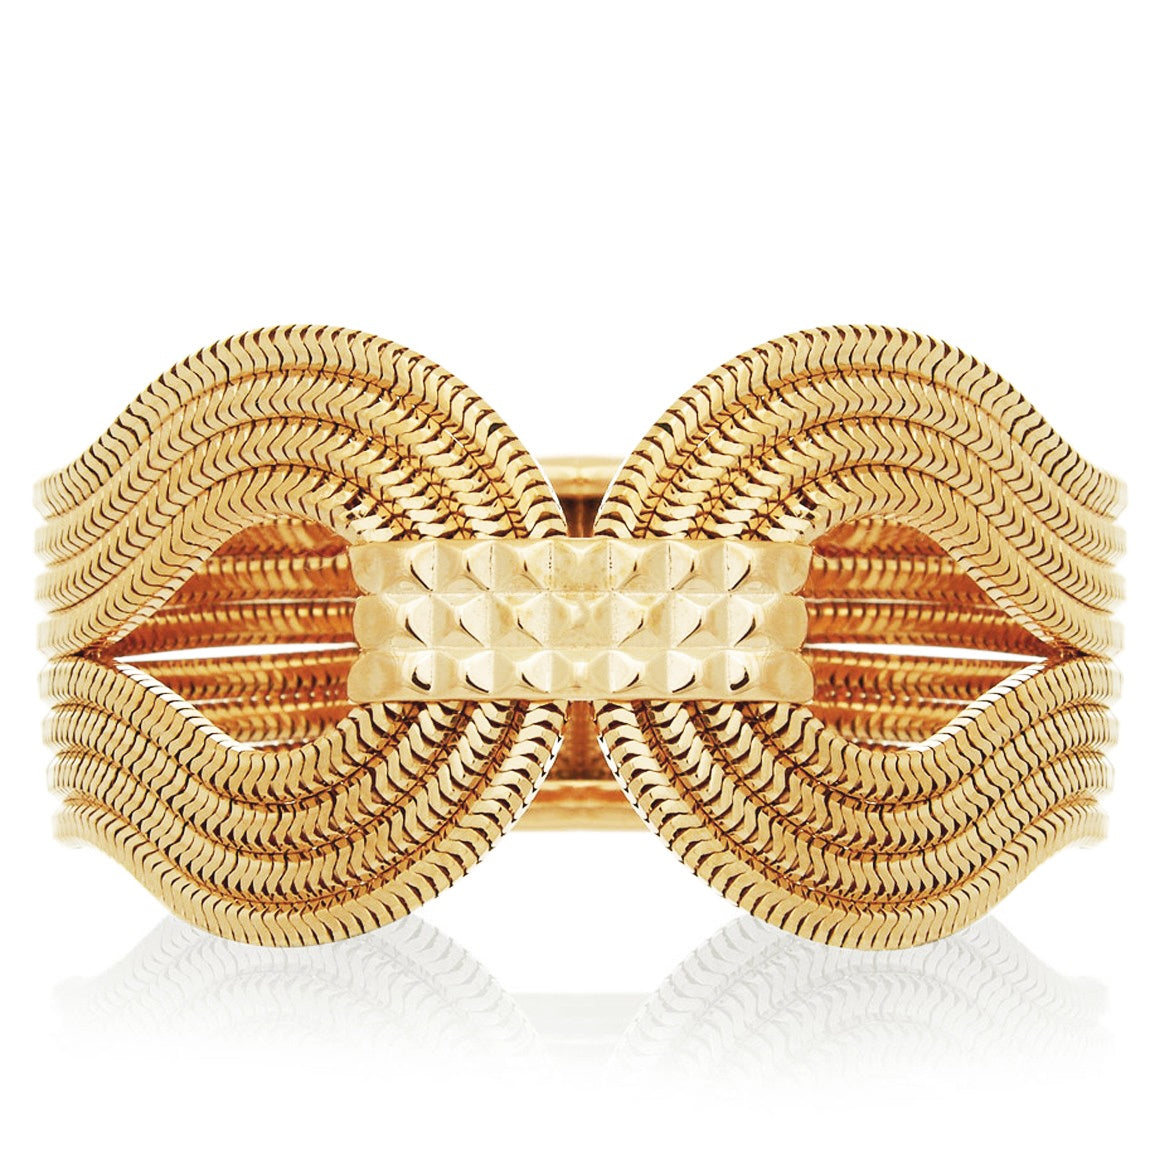 Gagarin Bracelet <br /> 22ct Yellow Gold on Brass